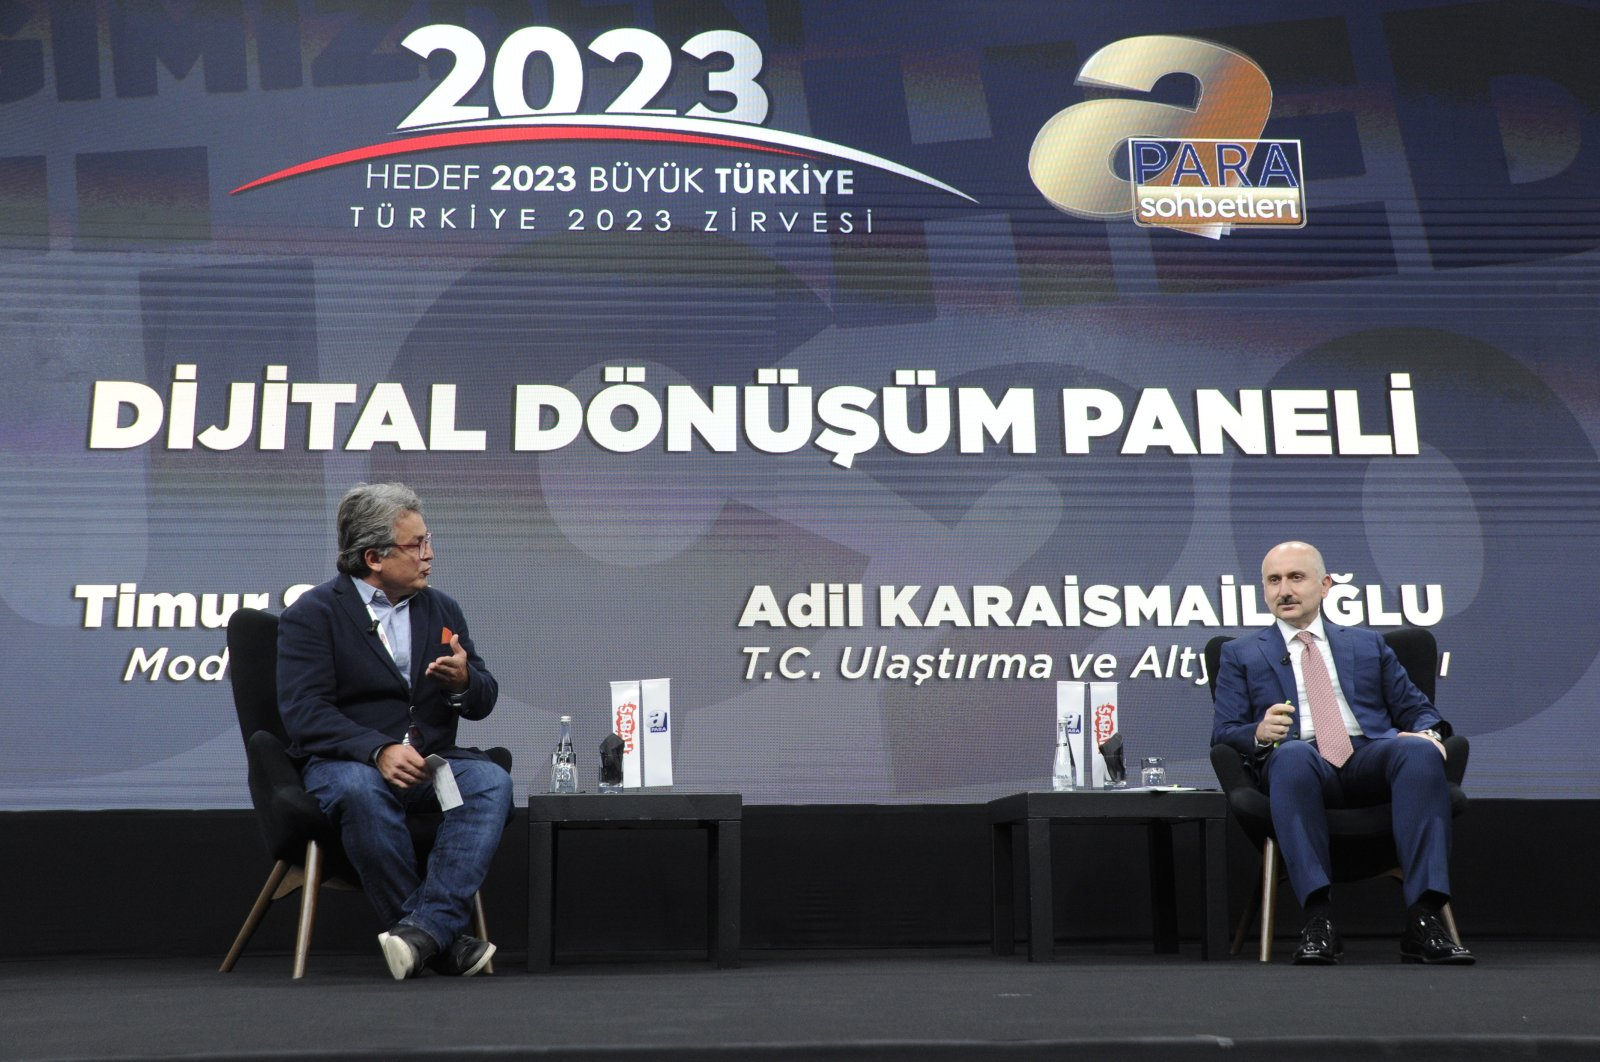 Transport and Infrastructure Minister Adil Karaismailoğlu (R) speaks during the 3rd Turkey 2023 Summit in Istanbul, Turkey, Oct. 22, 2020. (IHA Photo)